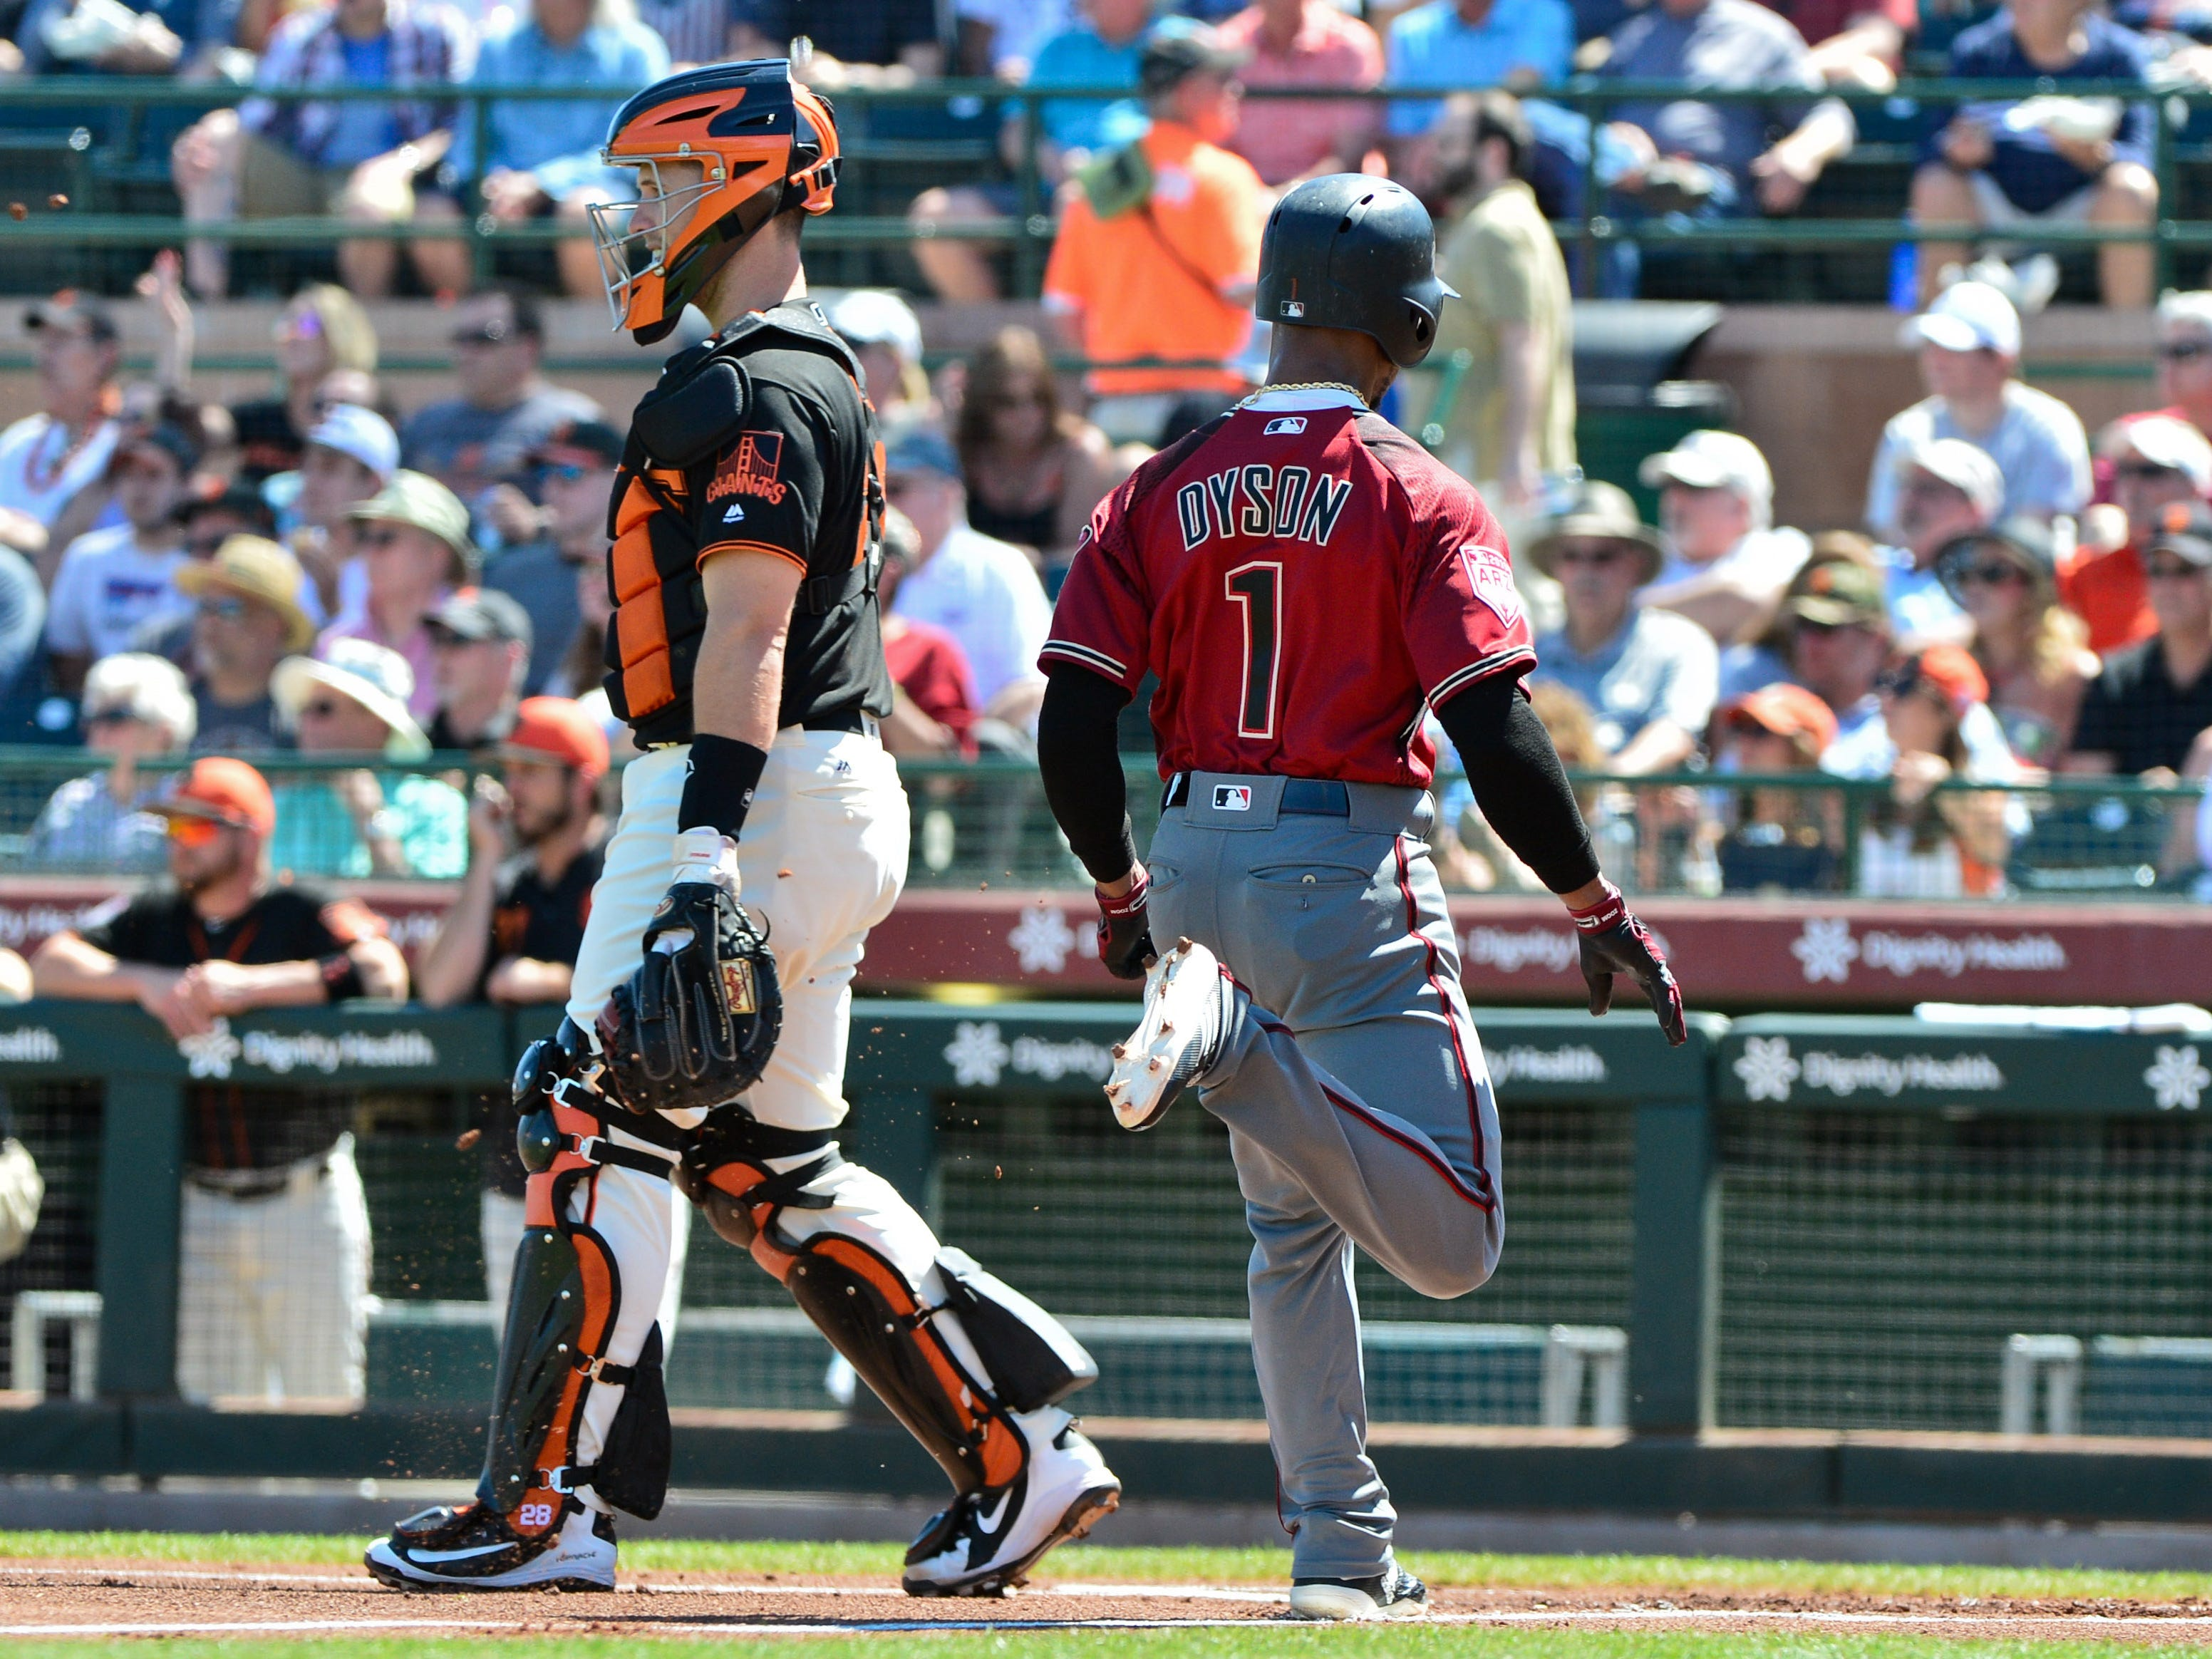 Mar 23, 2019; Scottsdale, AZ, USA; Arizona Diamondbacks center fielder Jarrod Dyson (1) scores a run behind San Francisco Giants catcher Buster Posey (28) during the first inning at Scottsdale Stadium.